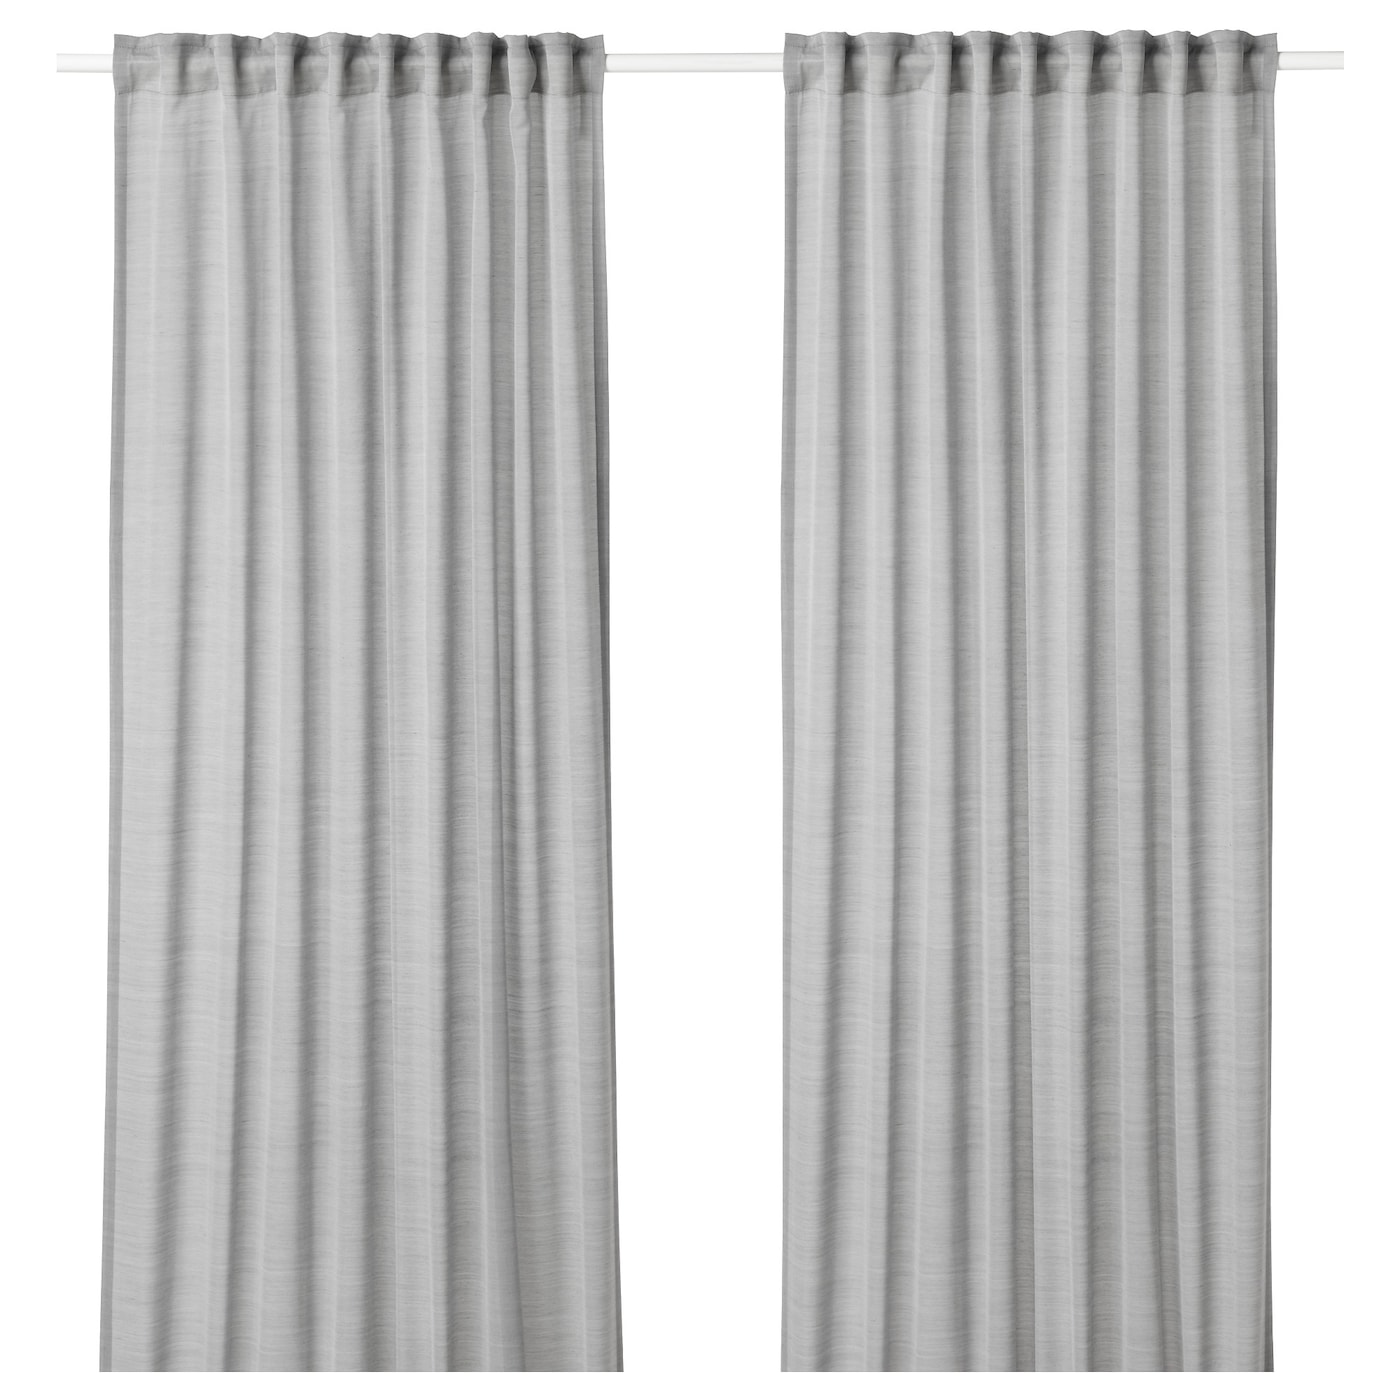 Hilja Curtains 1 Pair Grey 145x250 Cm Ikea